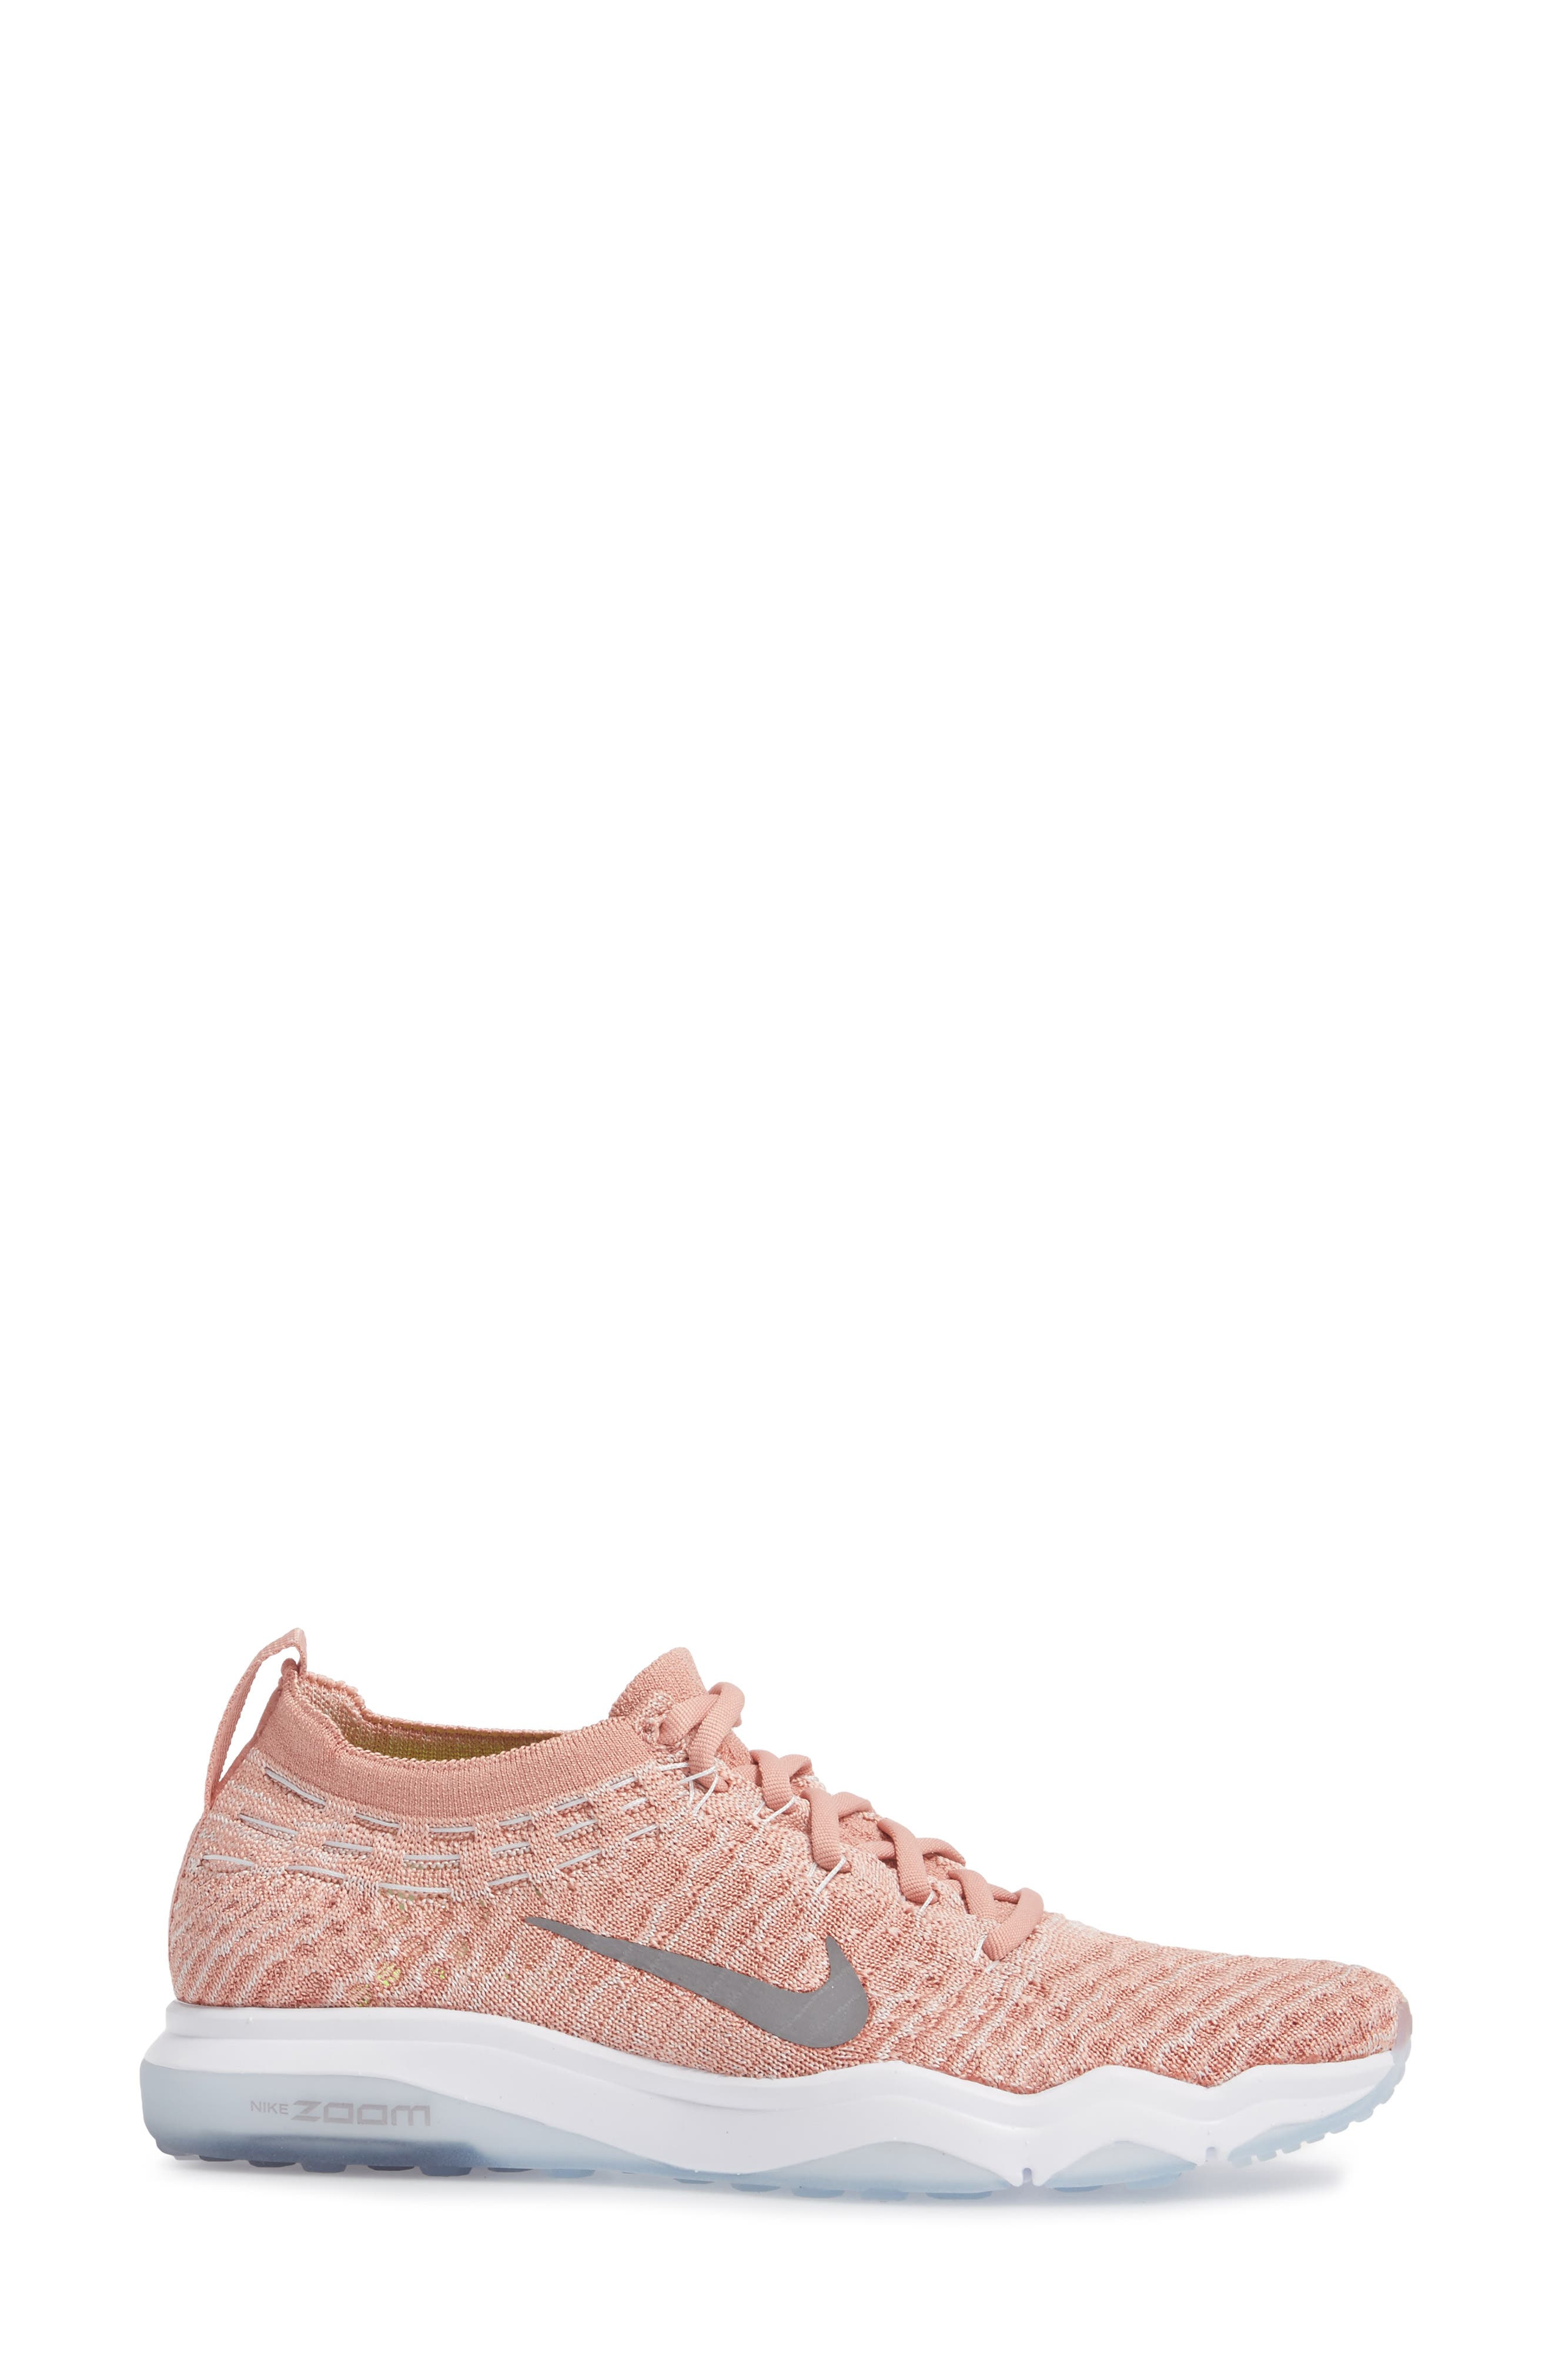 Air Zoom Fearless Flyknit Lux Training Shoe,                             Alternate thumbnail 11, color,